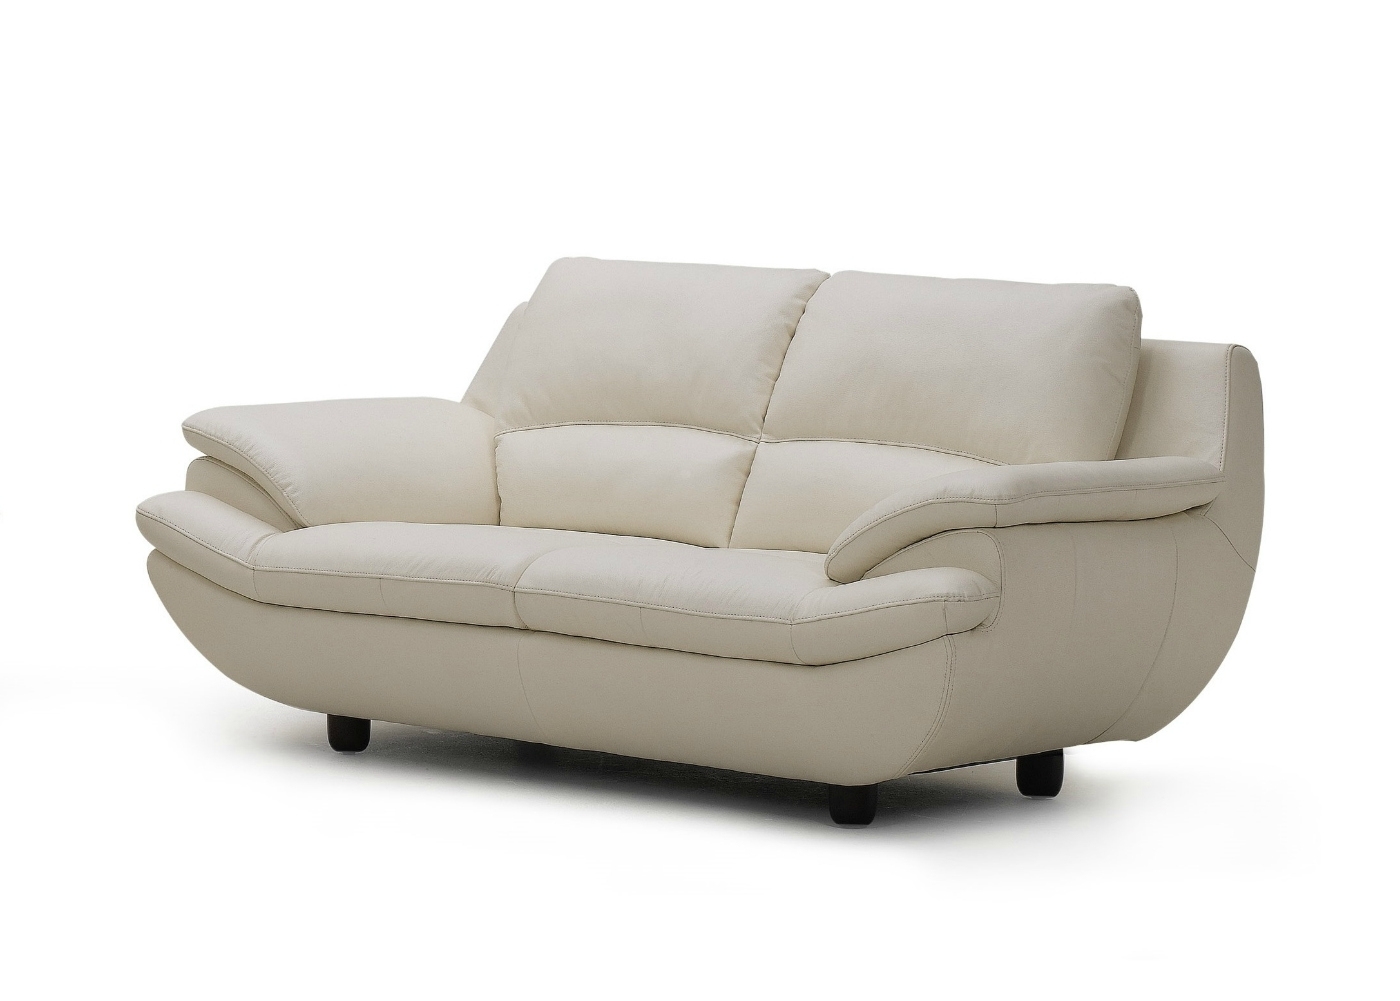 Off White Leather Sofas In Recent Plush Leather Sofa In Off White – Not Just Brown (View 11 of 15)